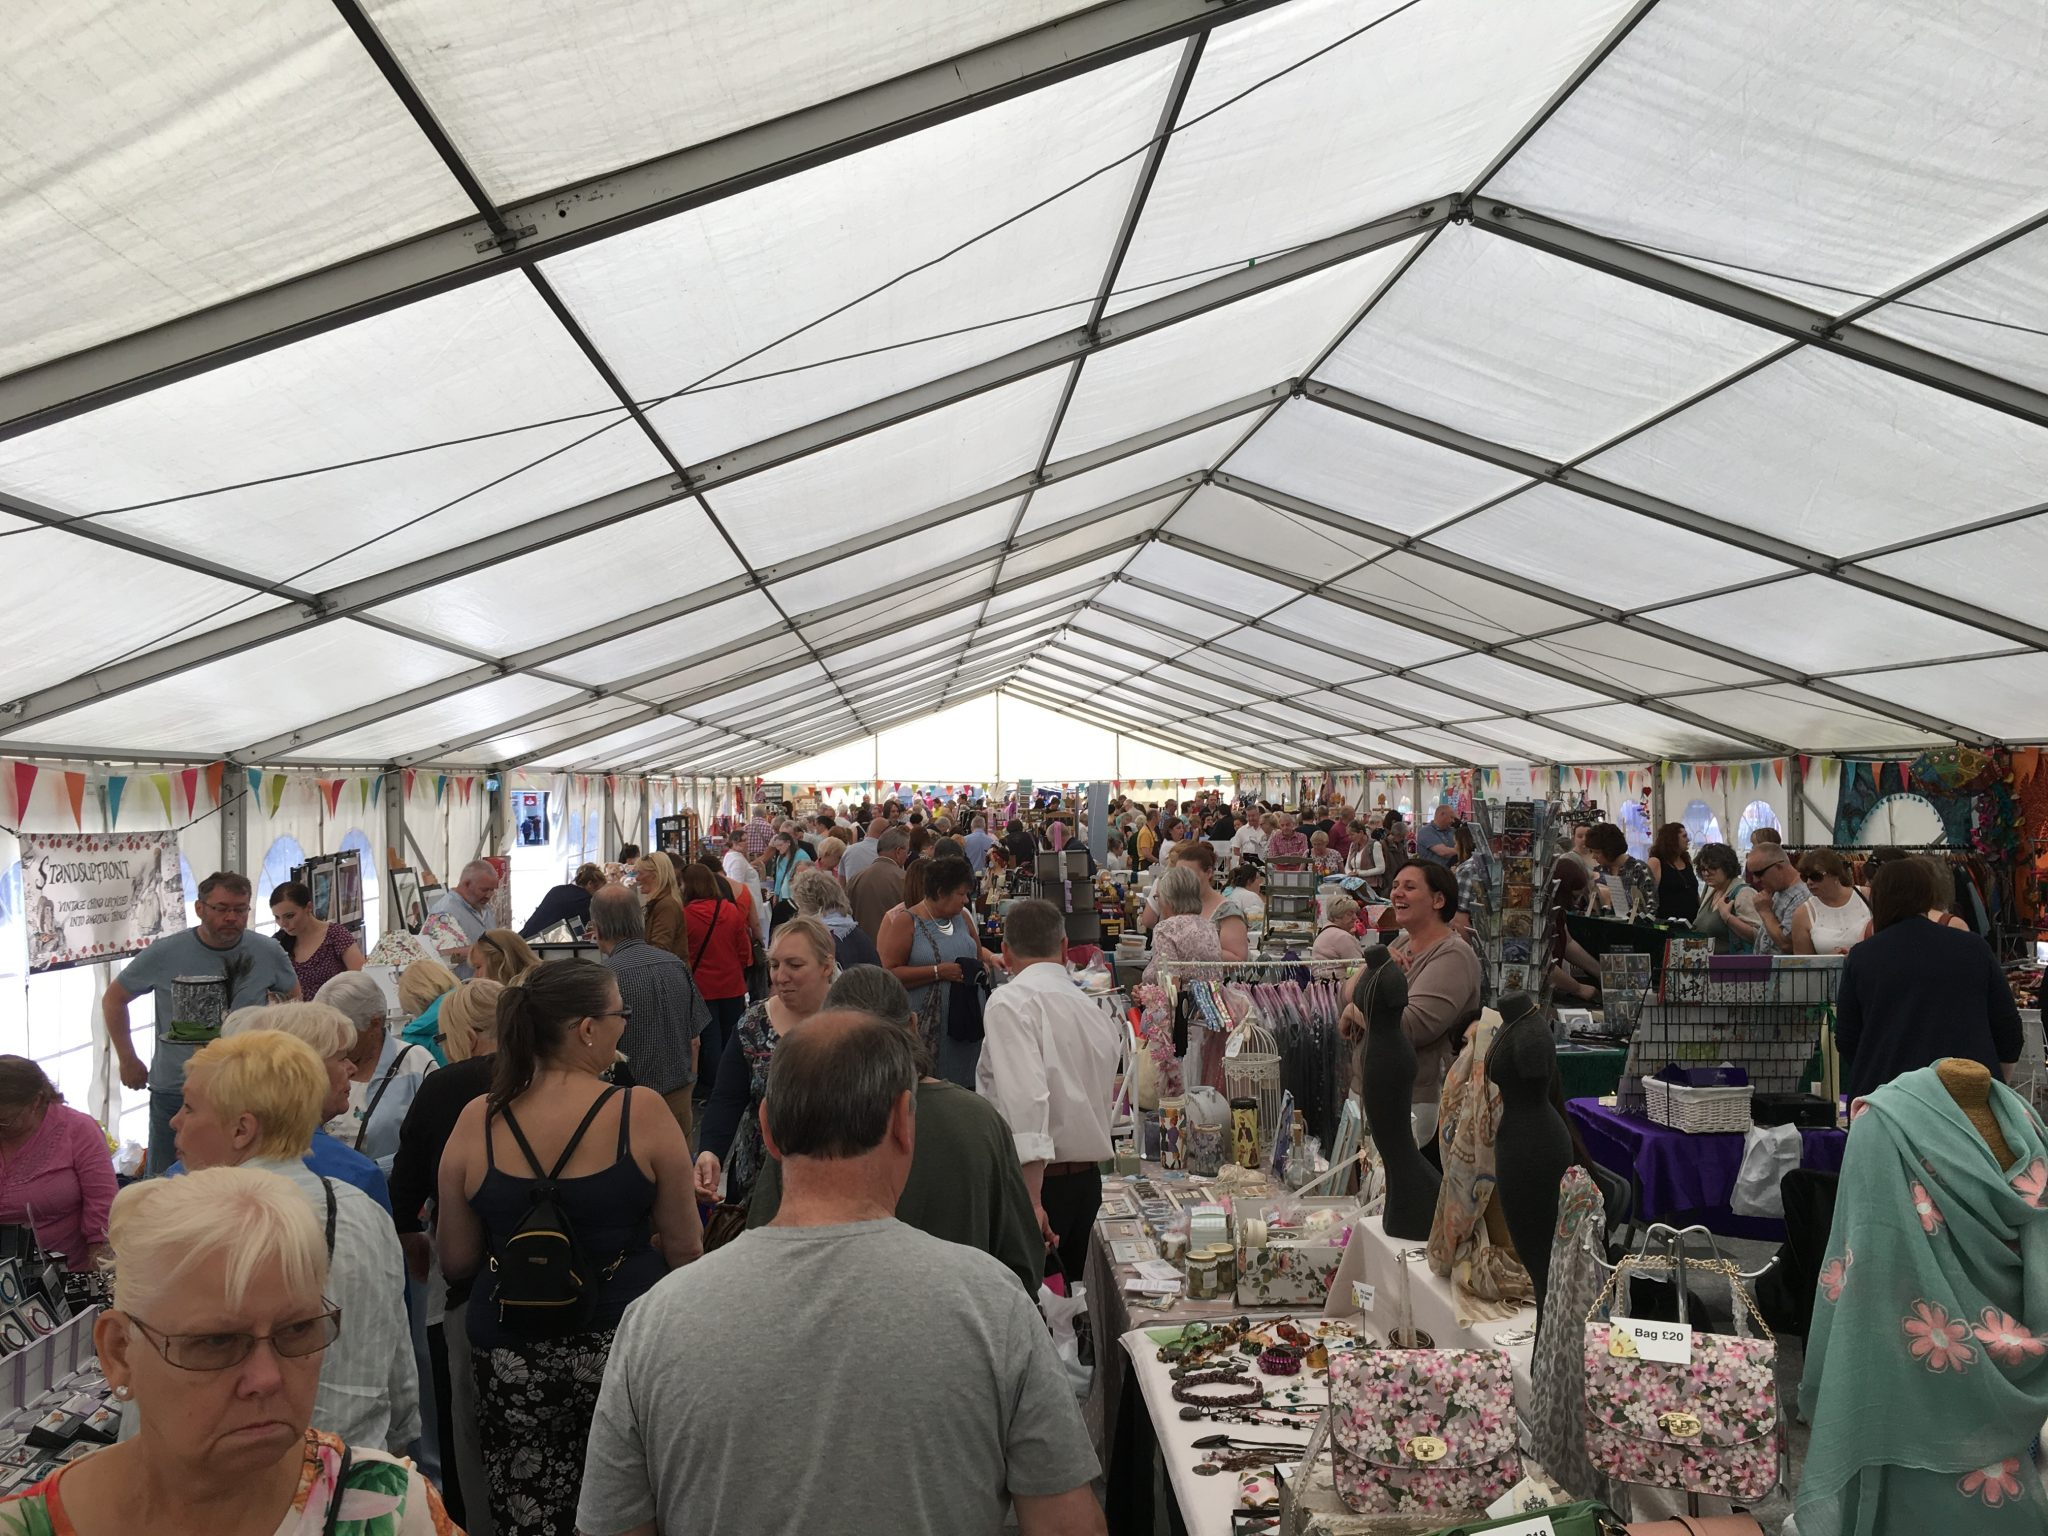 Our October visit to Stockton Chic Vintique may look like this packed marquee on Saturday 8th July